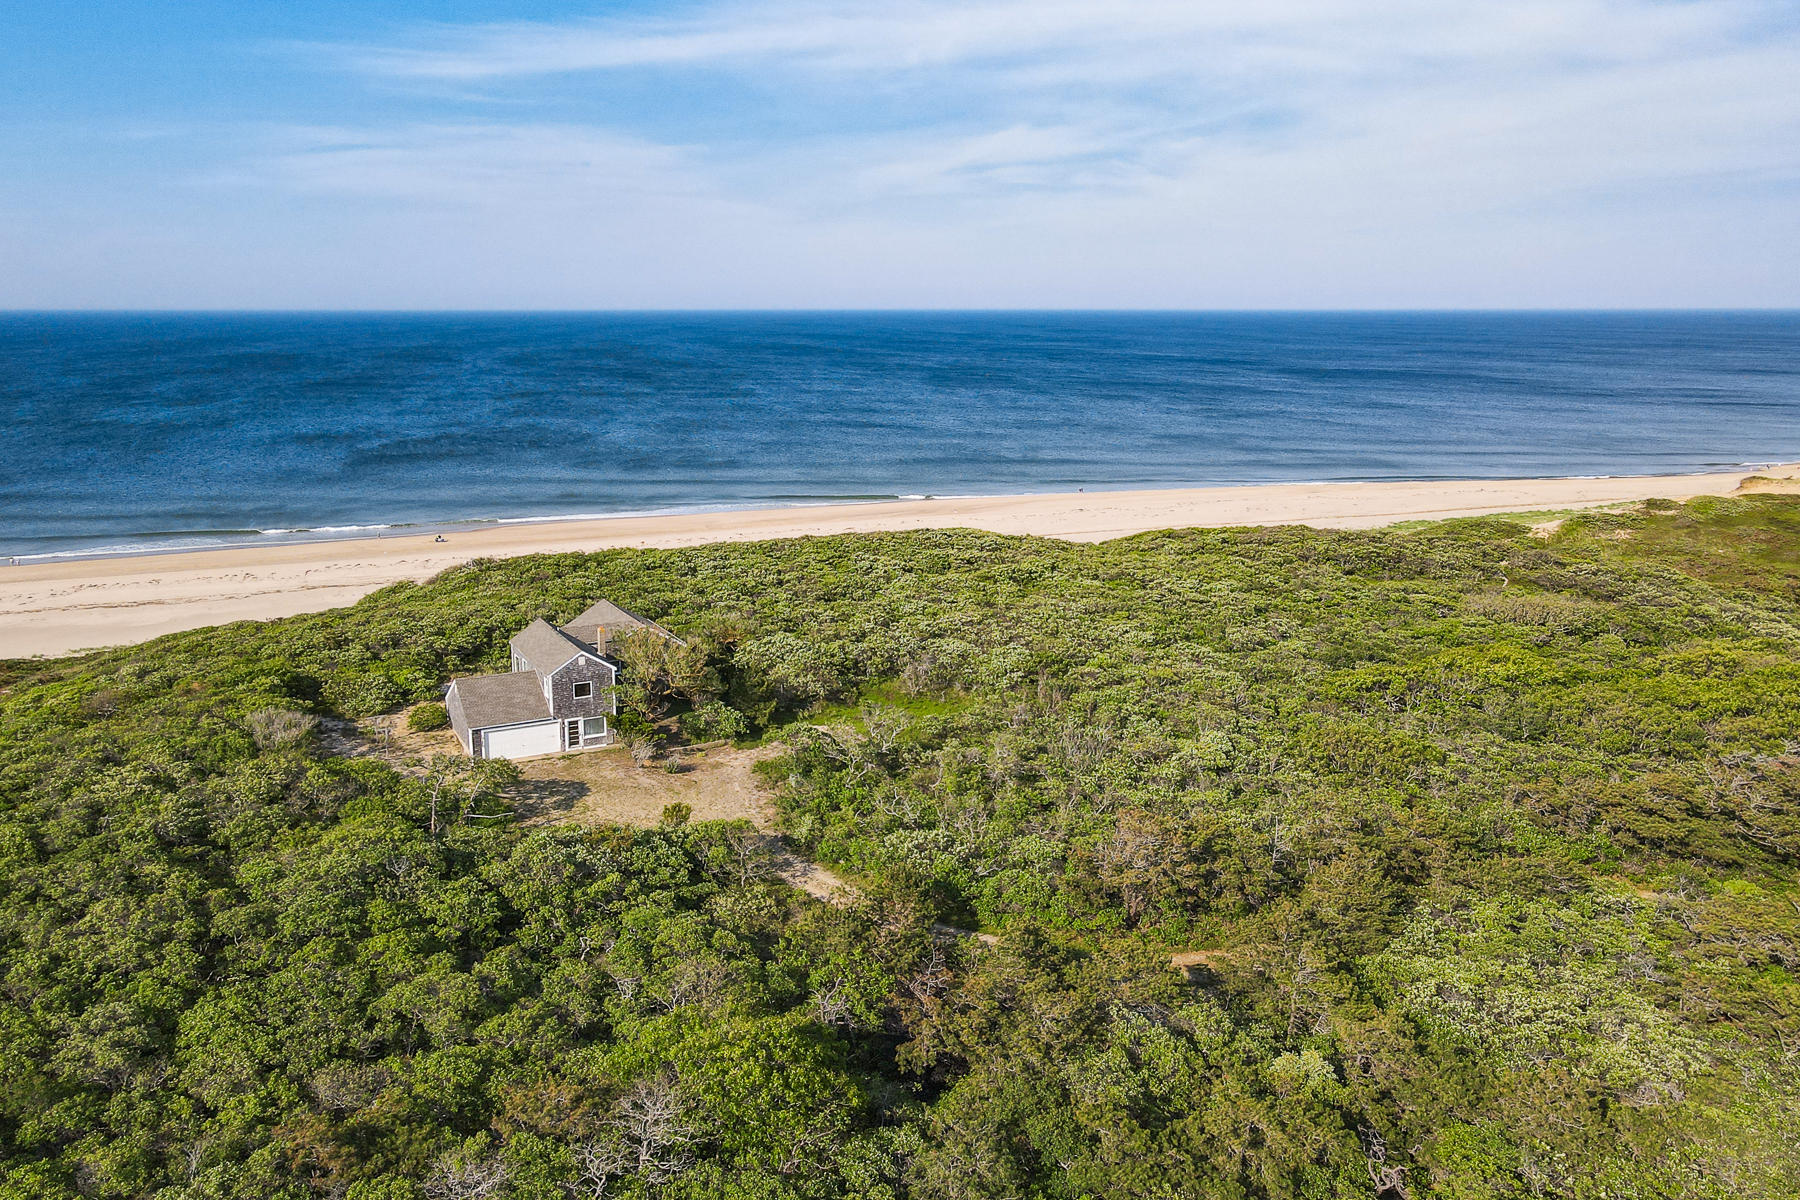 63 Head of the Meadow Road, North Truro MA, 02652 details